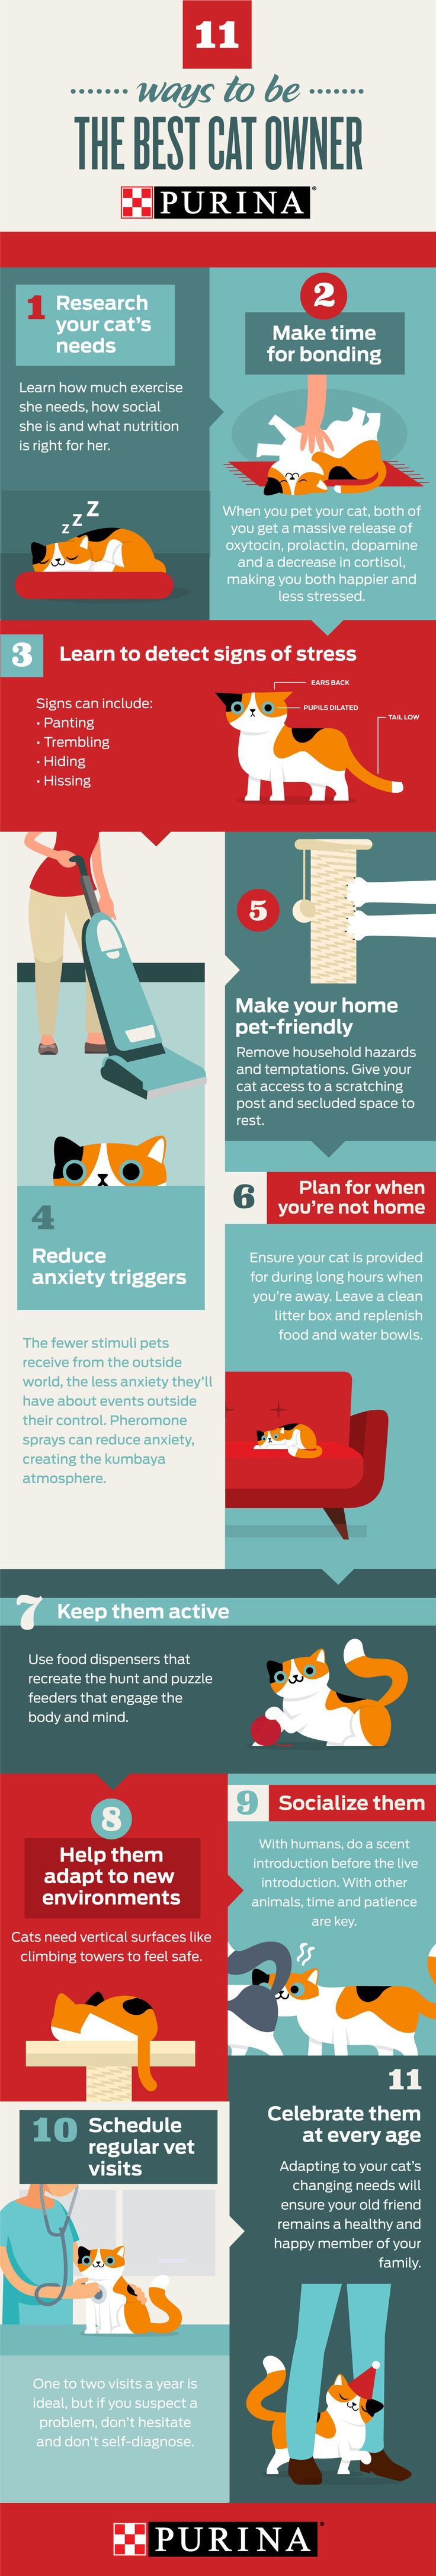 It's a new year and a new you! Be your best pet owner yet in 2018. Whether you're trying to help your cat lose weight or need healthy easy ideas for your pet, Purina is here to help you & your cat start off the New Year right! These 11 tips will put you on the path to becoming a responsible cat owner & helping you give your cat her best life possible. Click the image for more practical suggestions for keeping your pet happy and healthy throughout her life. For more pet tips, visit…